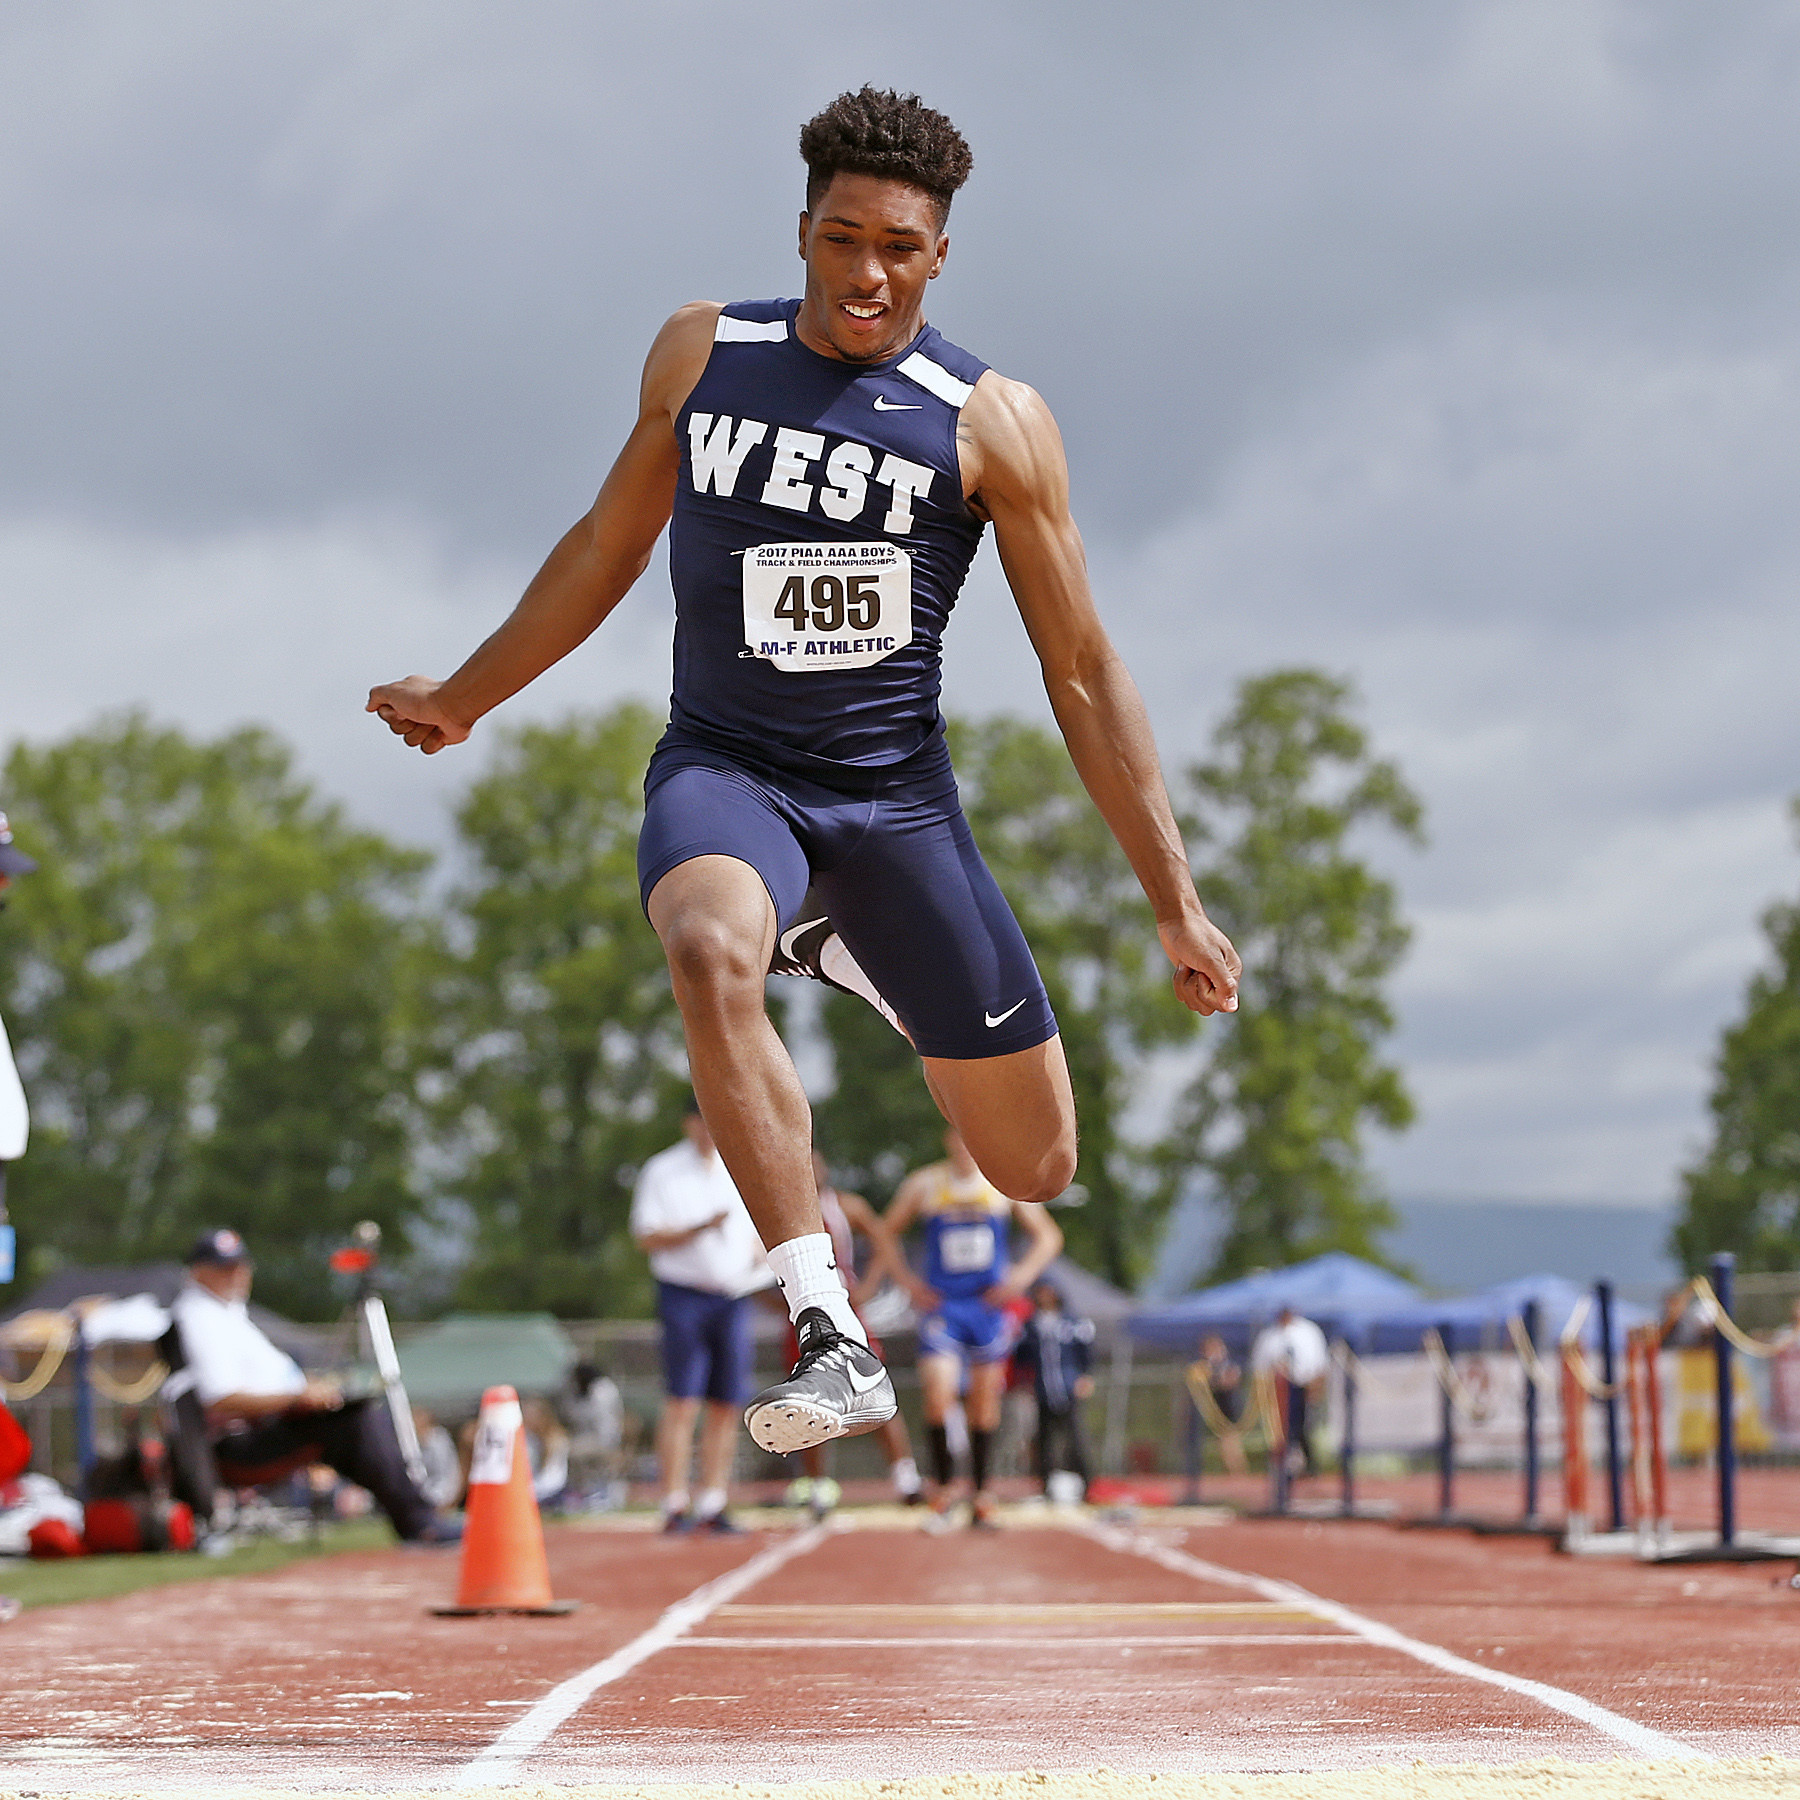 Track Winner: Boys Results From Day 1 Of The PIAA Track & Field